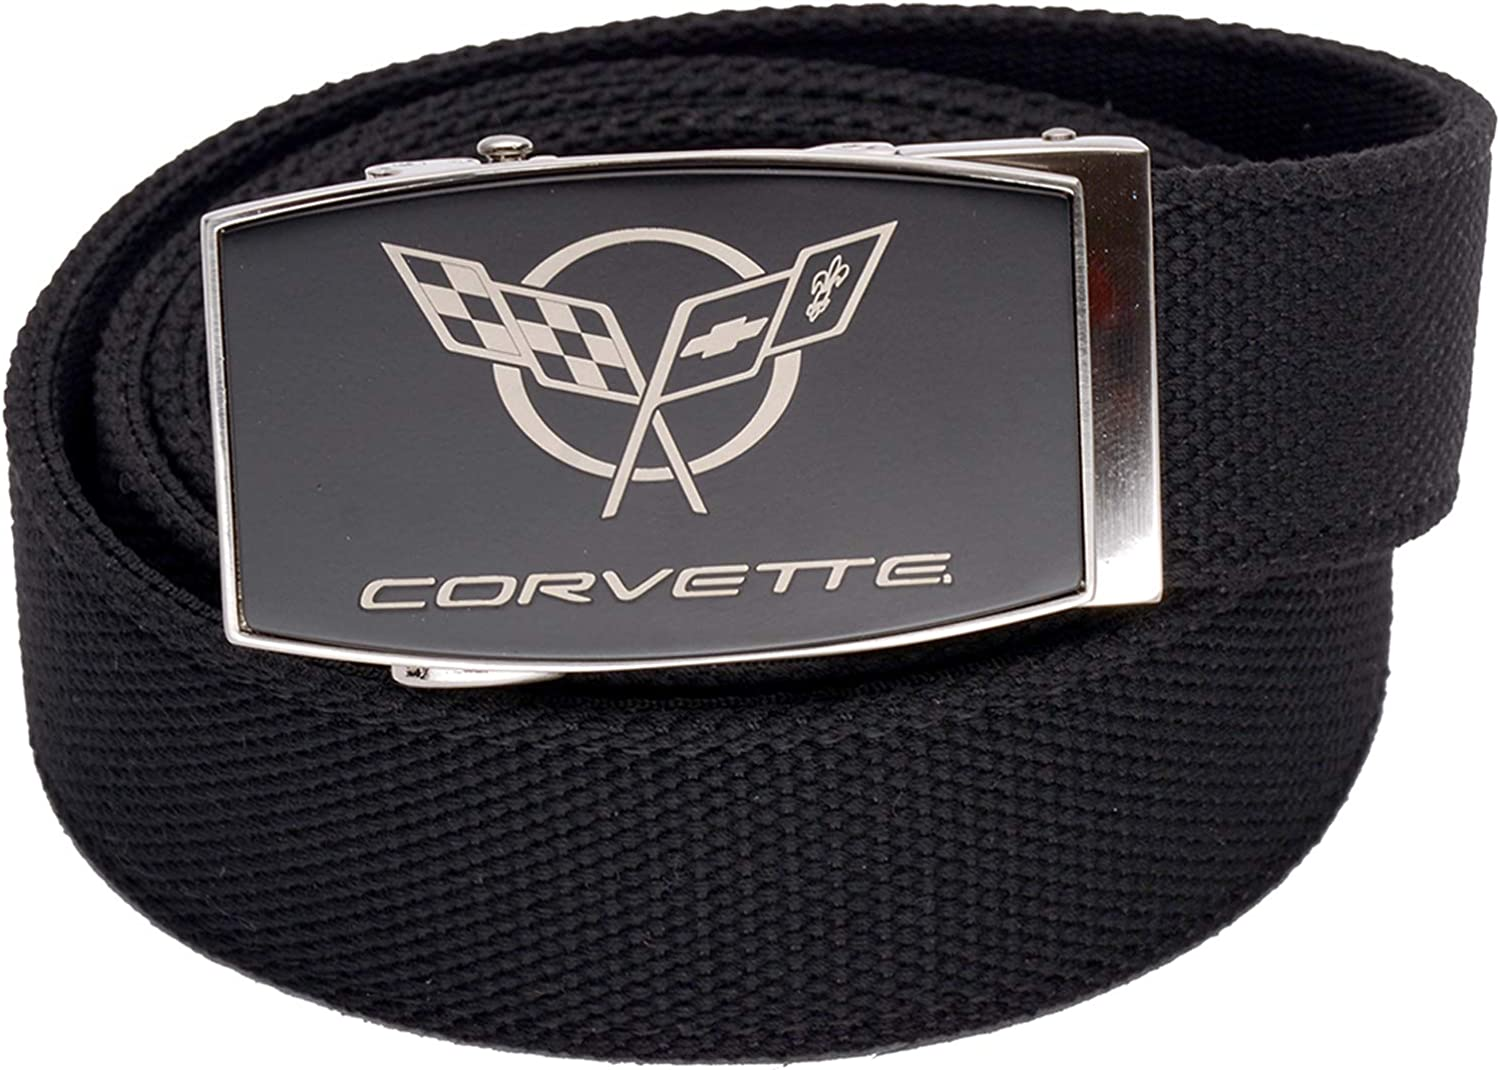 Nexbelt Corvette C5 Black Buckle Aston Black Belt